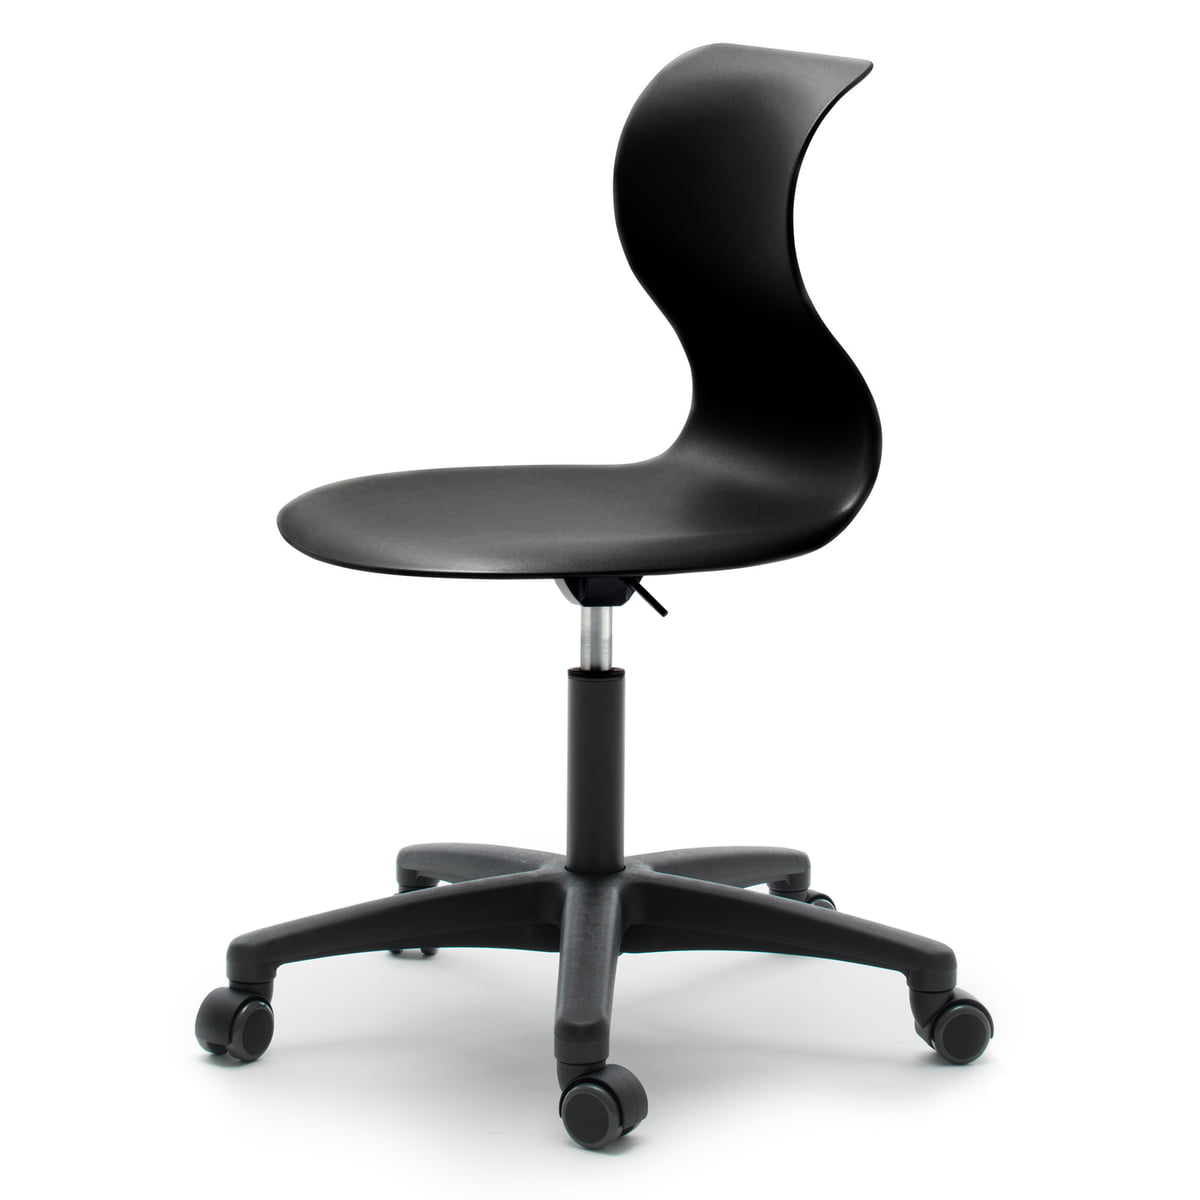 Flötotto   Pro 6 Swivel Chair, Black